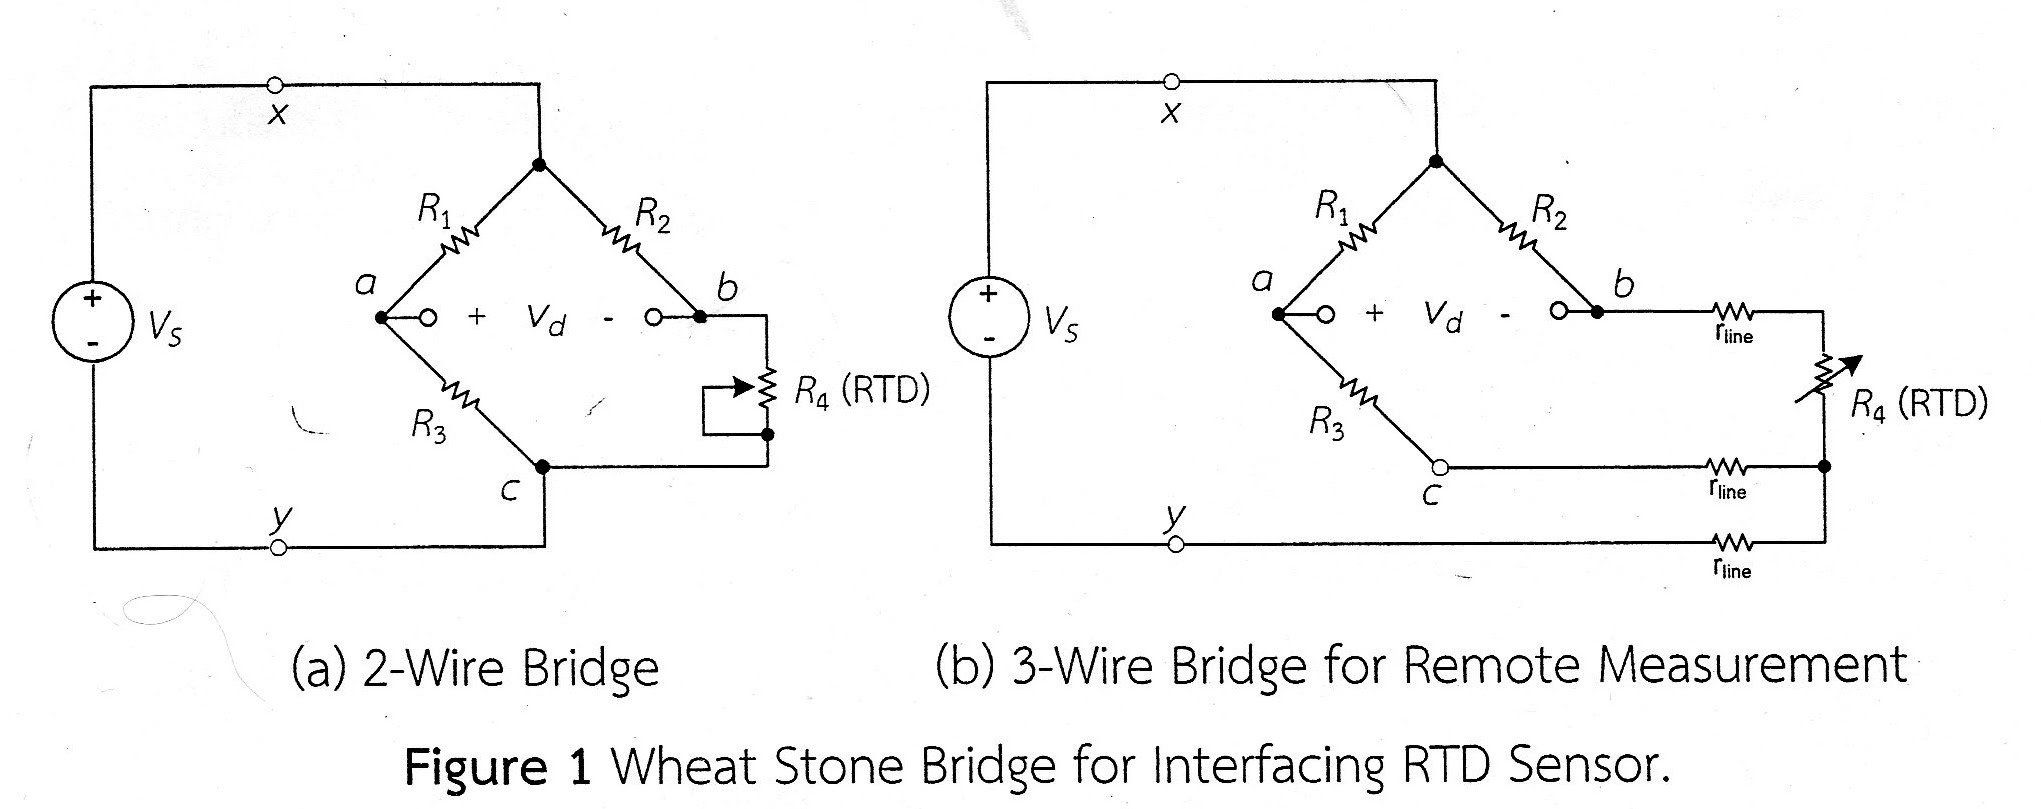 LabIV: Op amp Signal-Conditioning Circuit for 3-Wire RTD Bridge